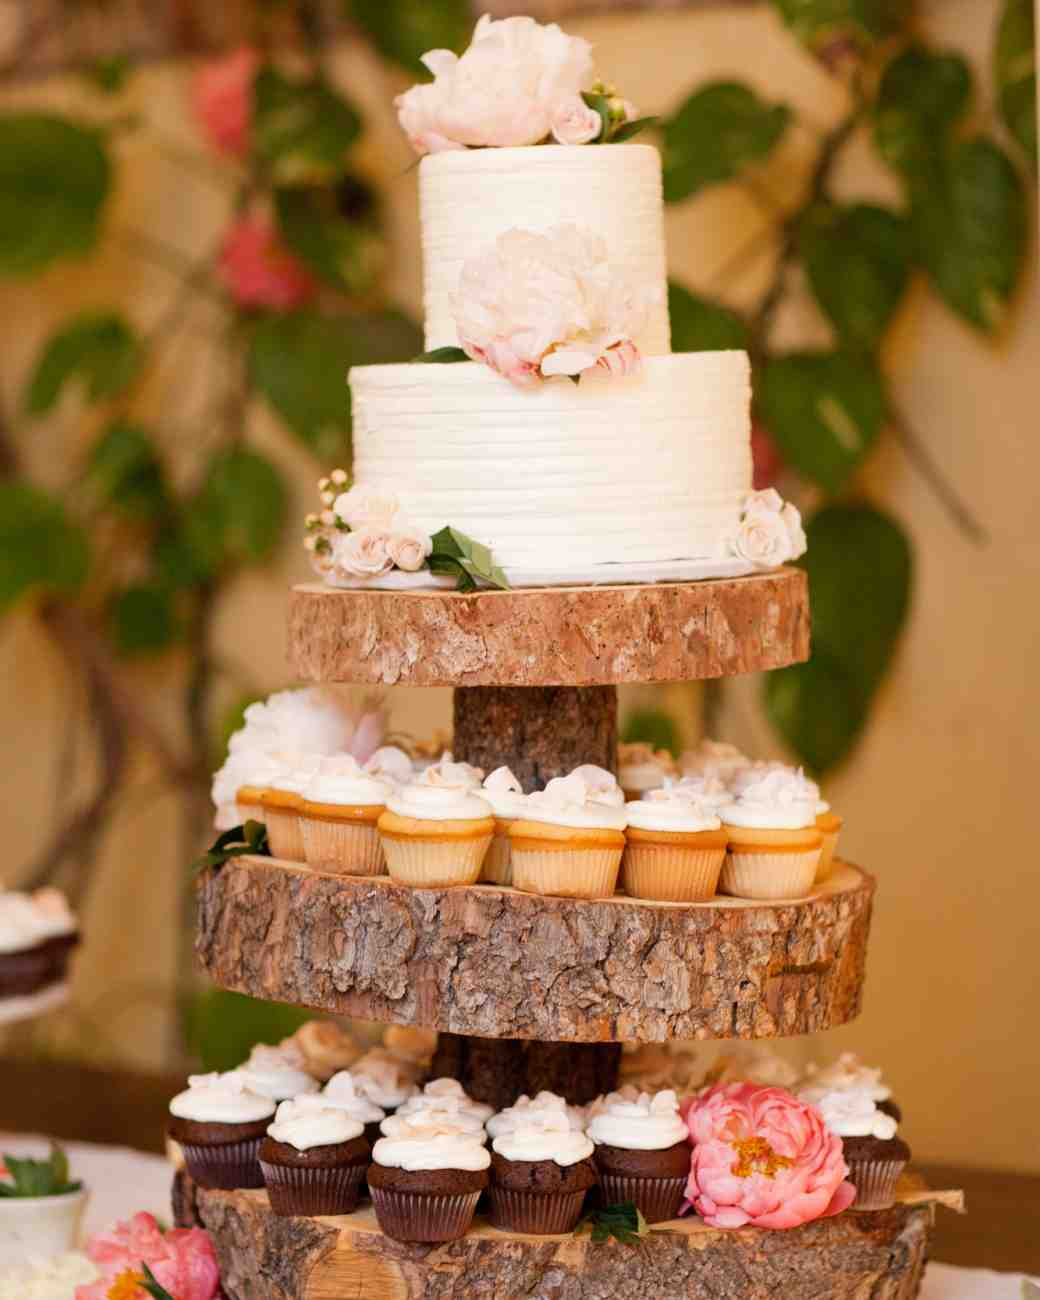 Rustic Wedding Cupcake Ideas: 20+ Rustic Country Wedding Cakes For The Perfect Fall Wedding